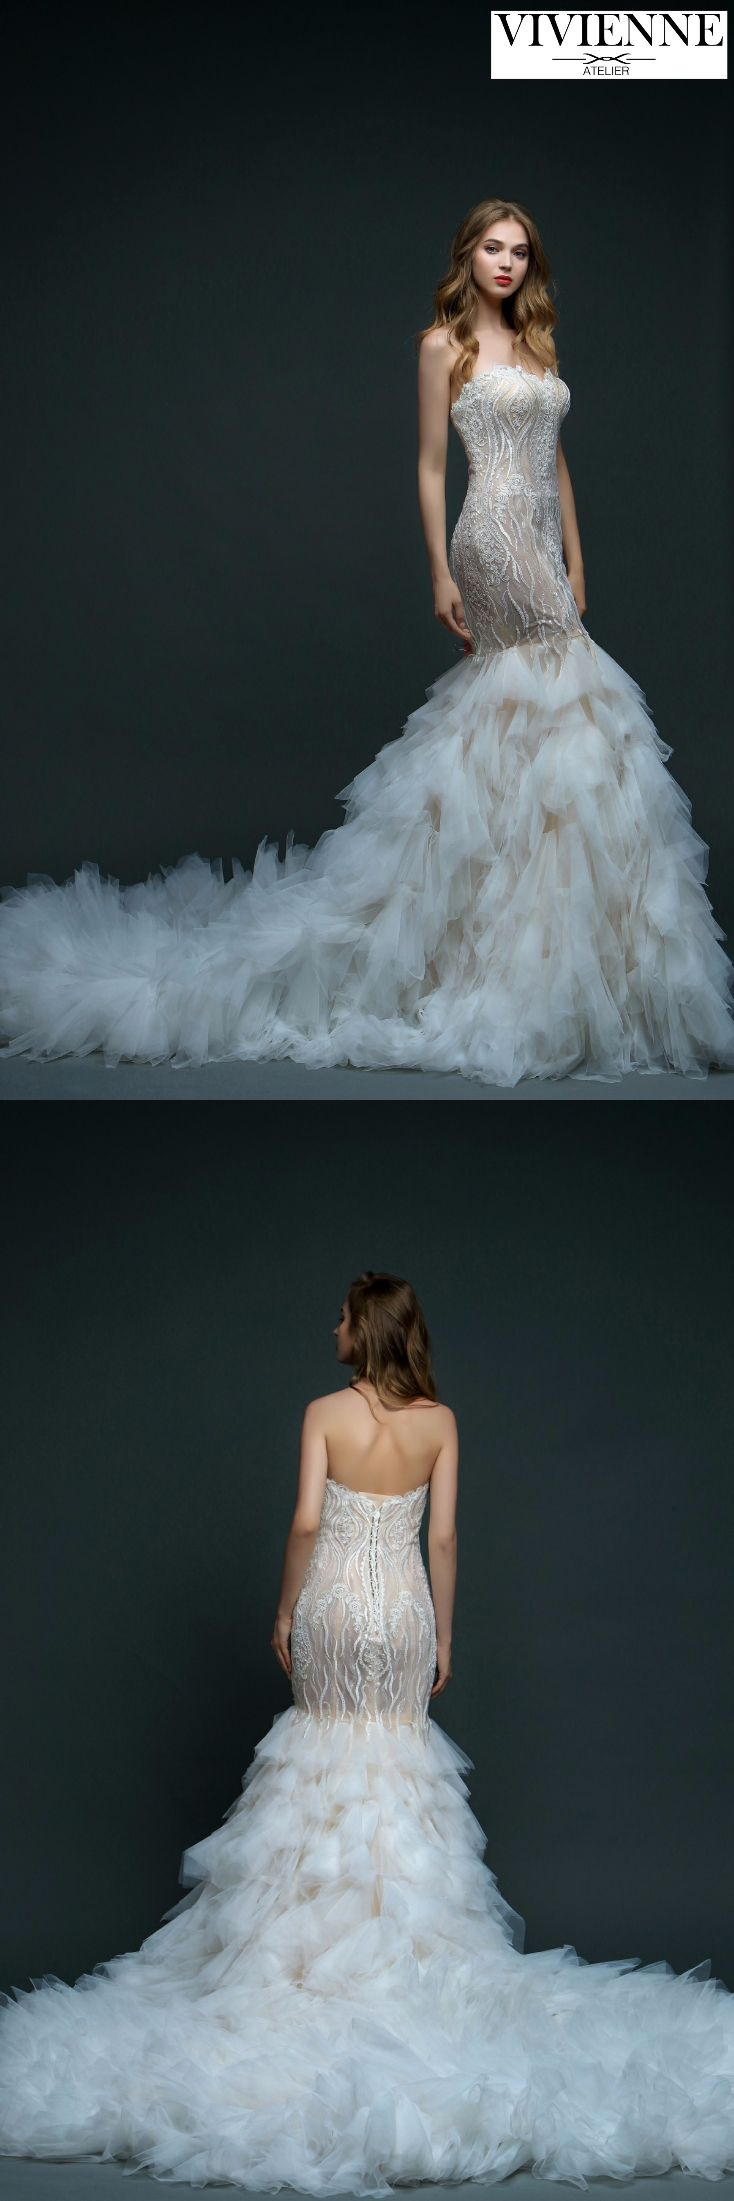 Janice. Have you ever seen so many beautiful wedding dresses in one ...